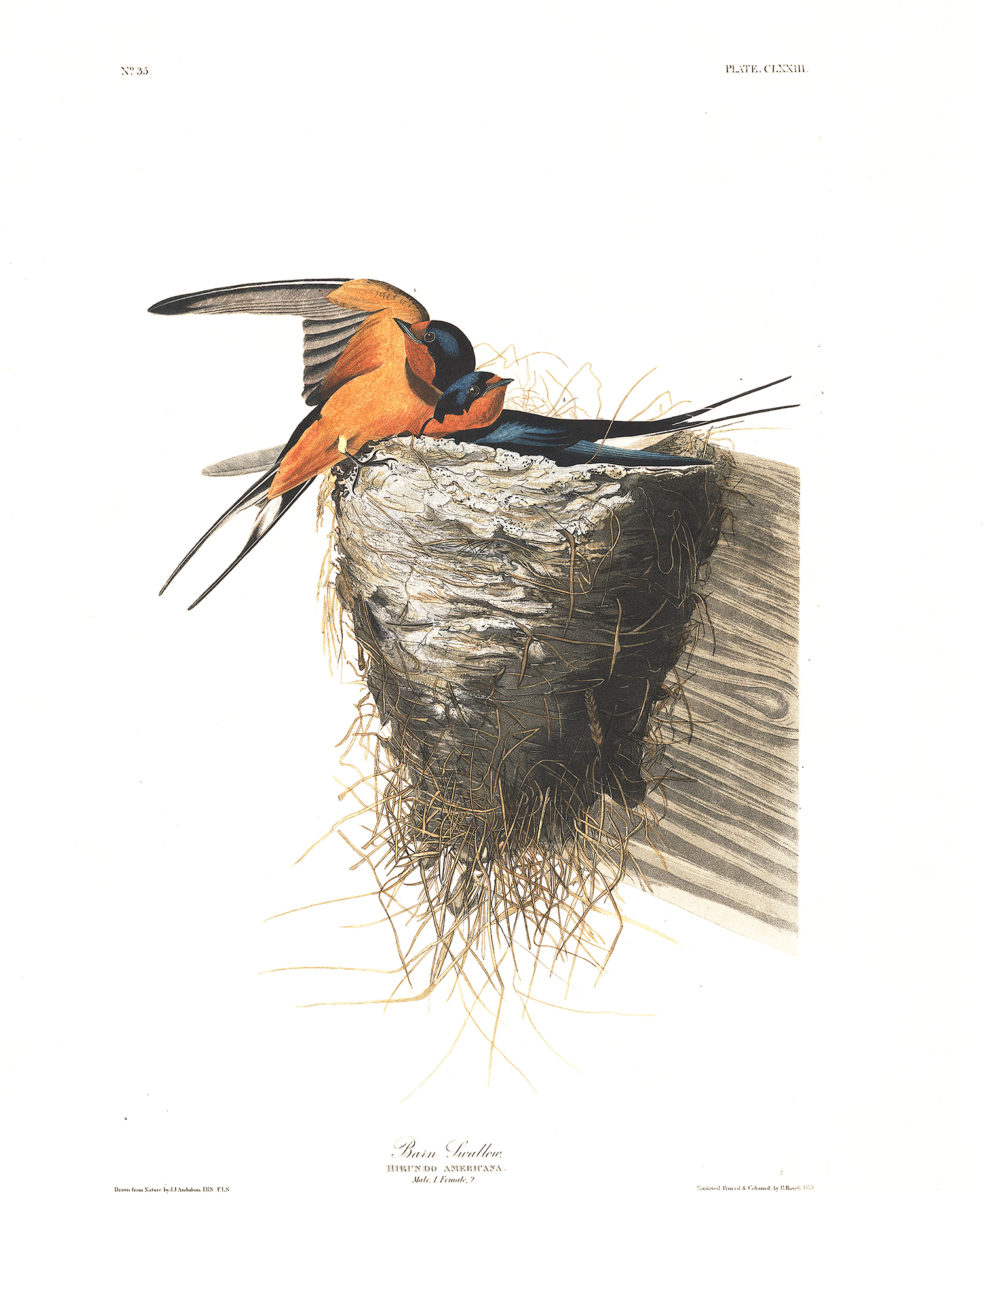 Plate 173 - Barn Swallow